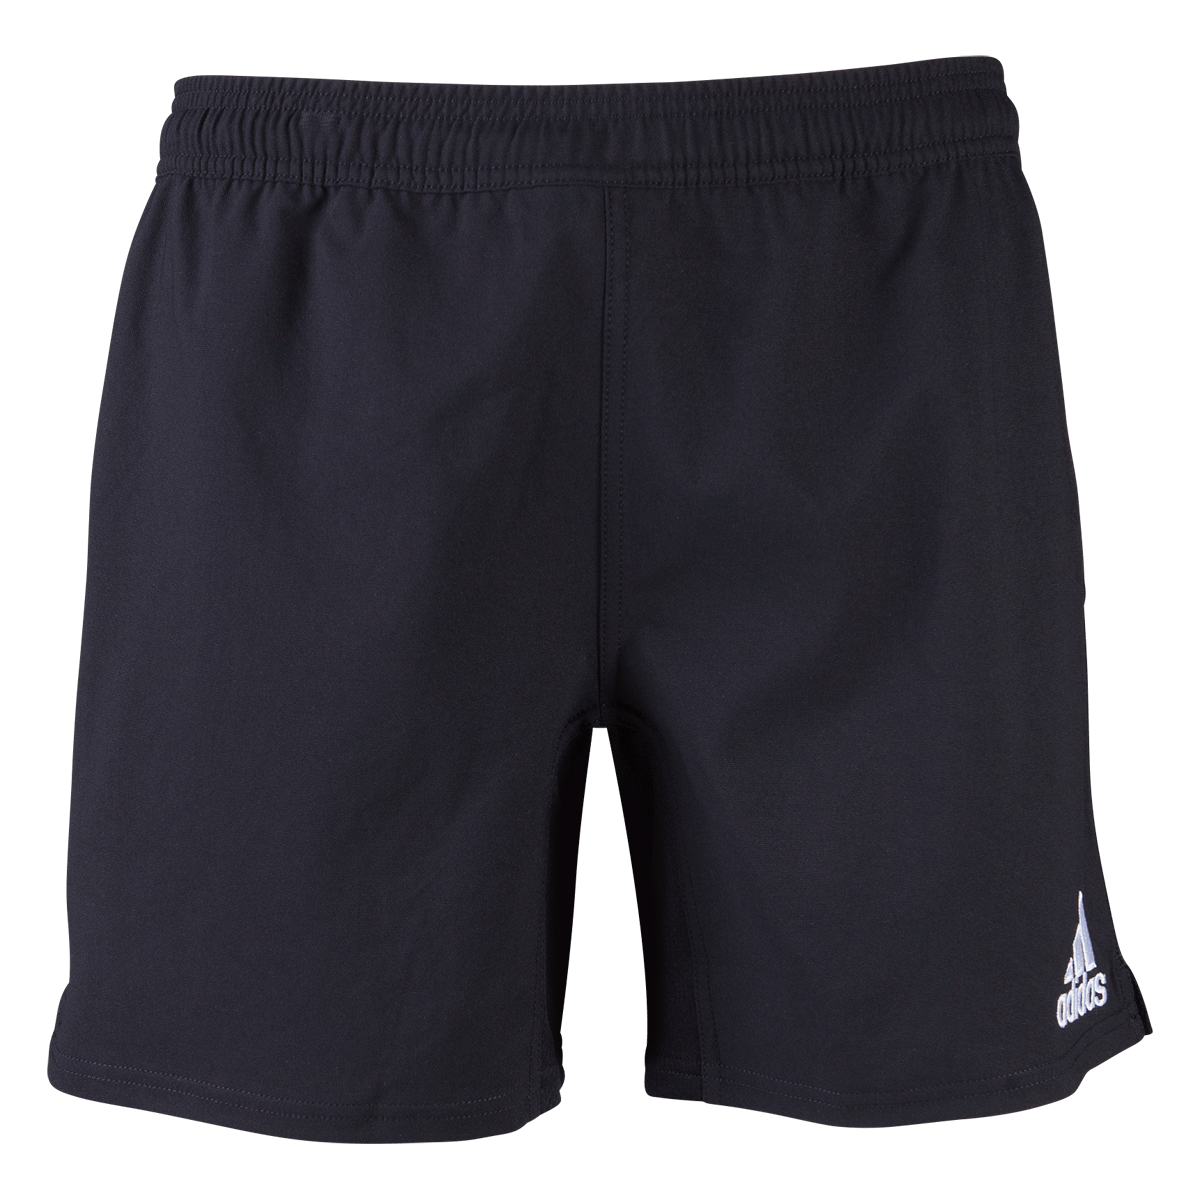 adidas 15 Black/White Youth 3 Stripe Shorts